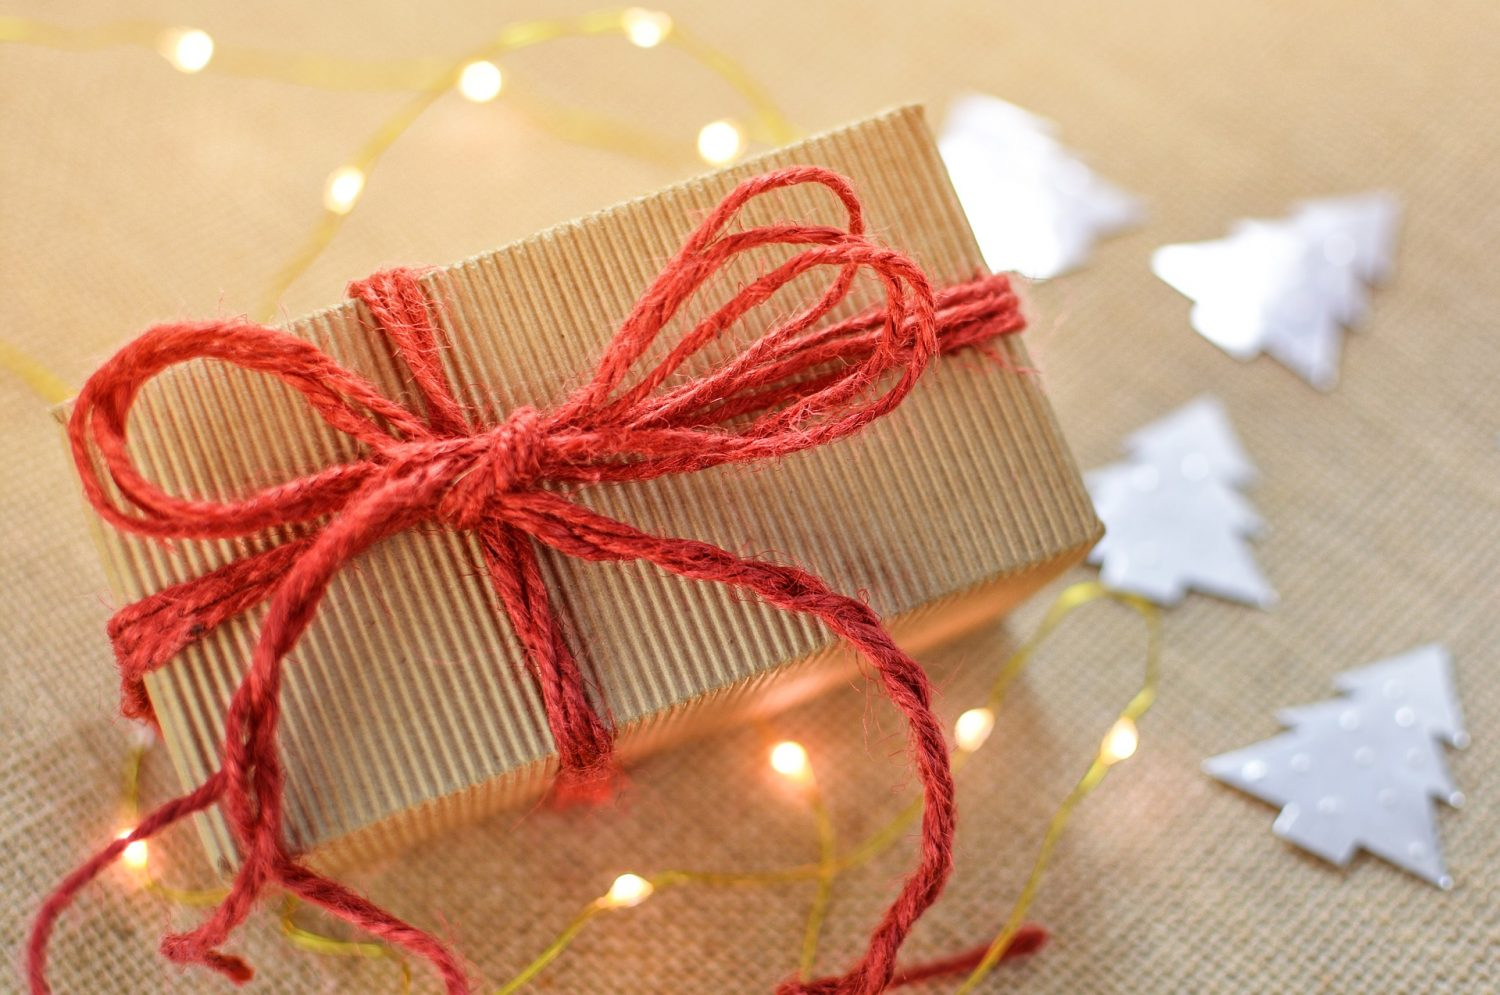 Untold Benefits Of Investing In Promotional Gifts